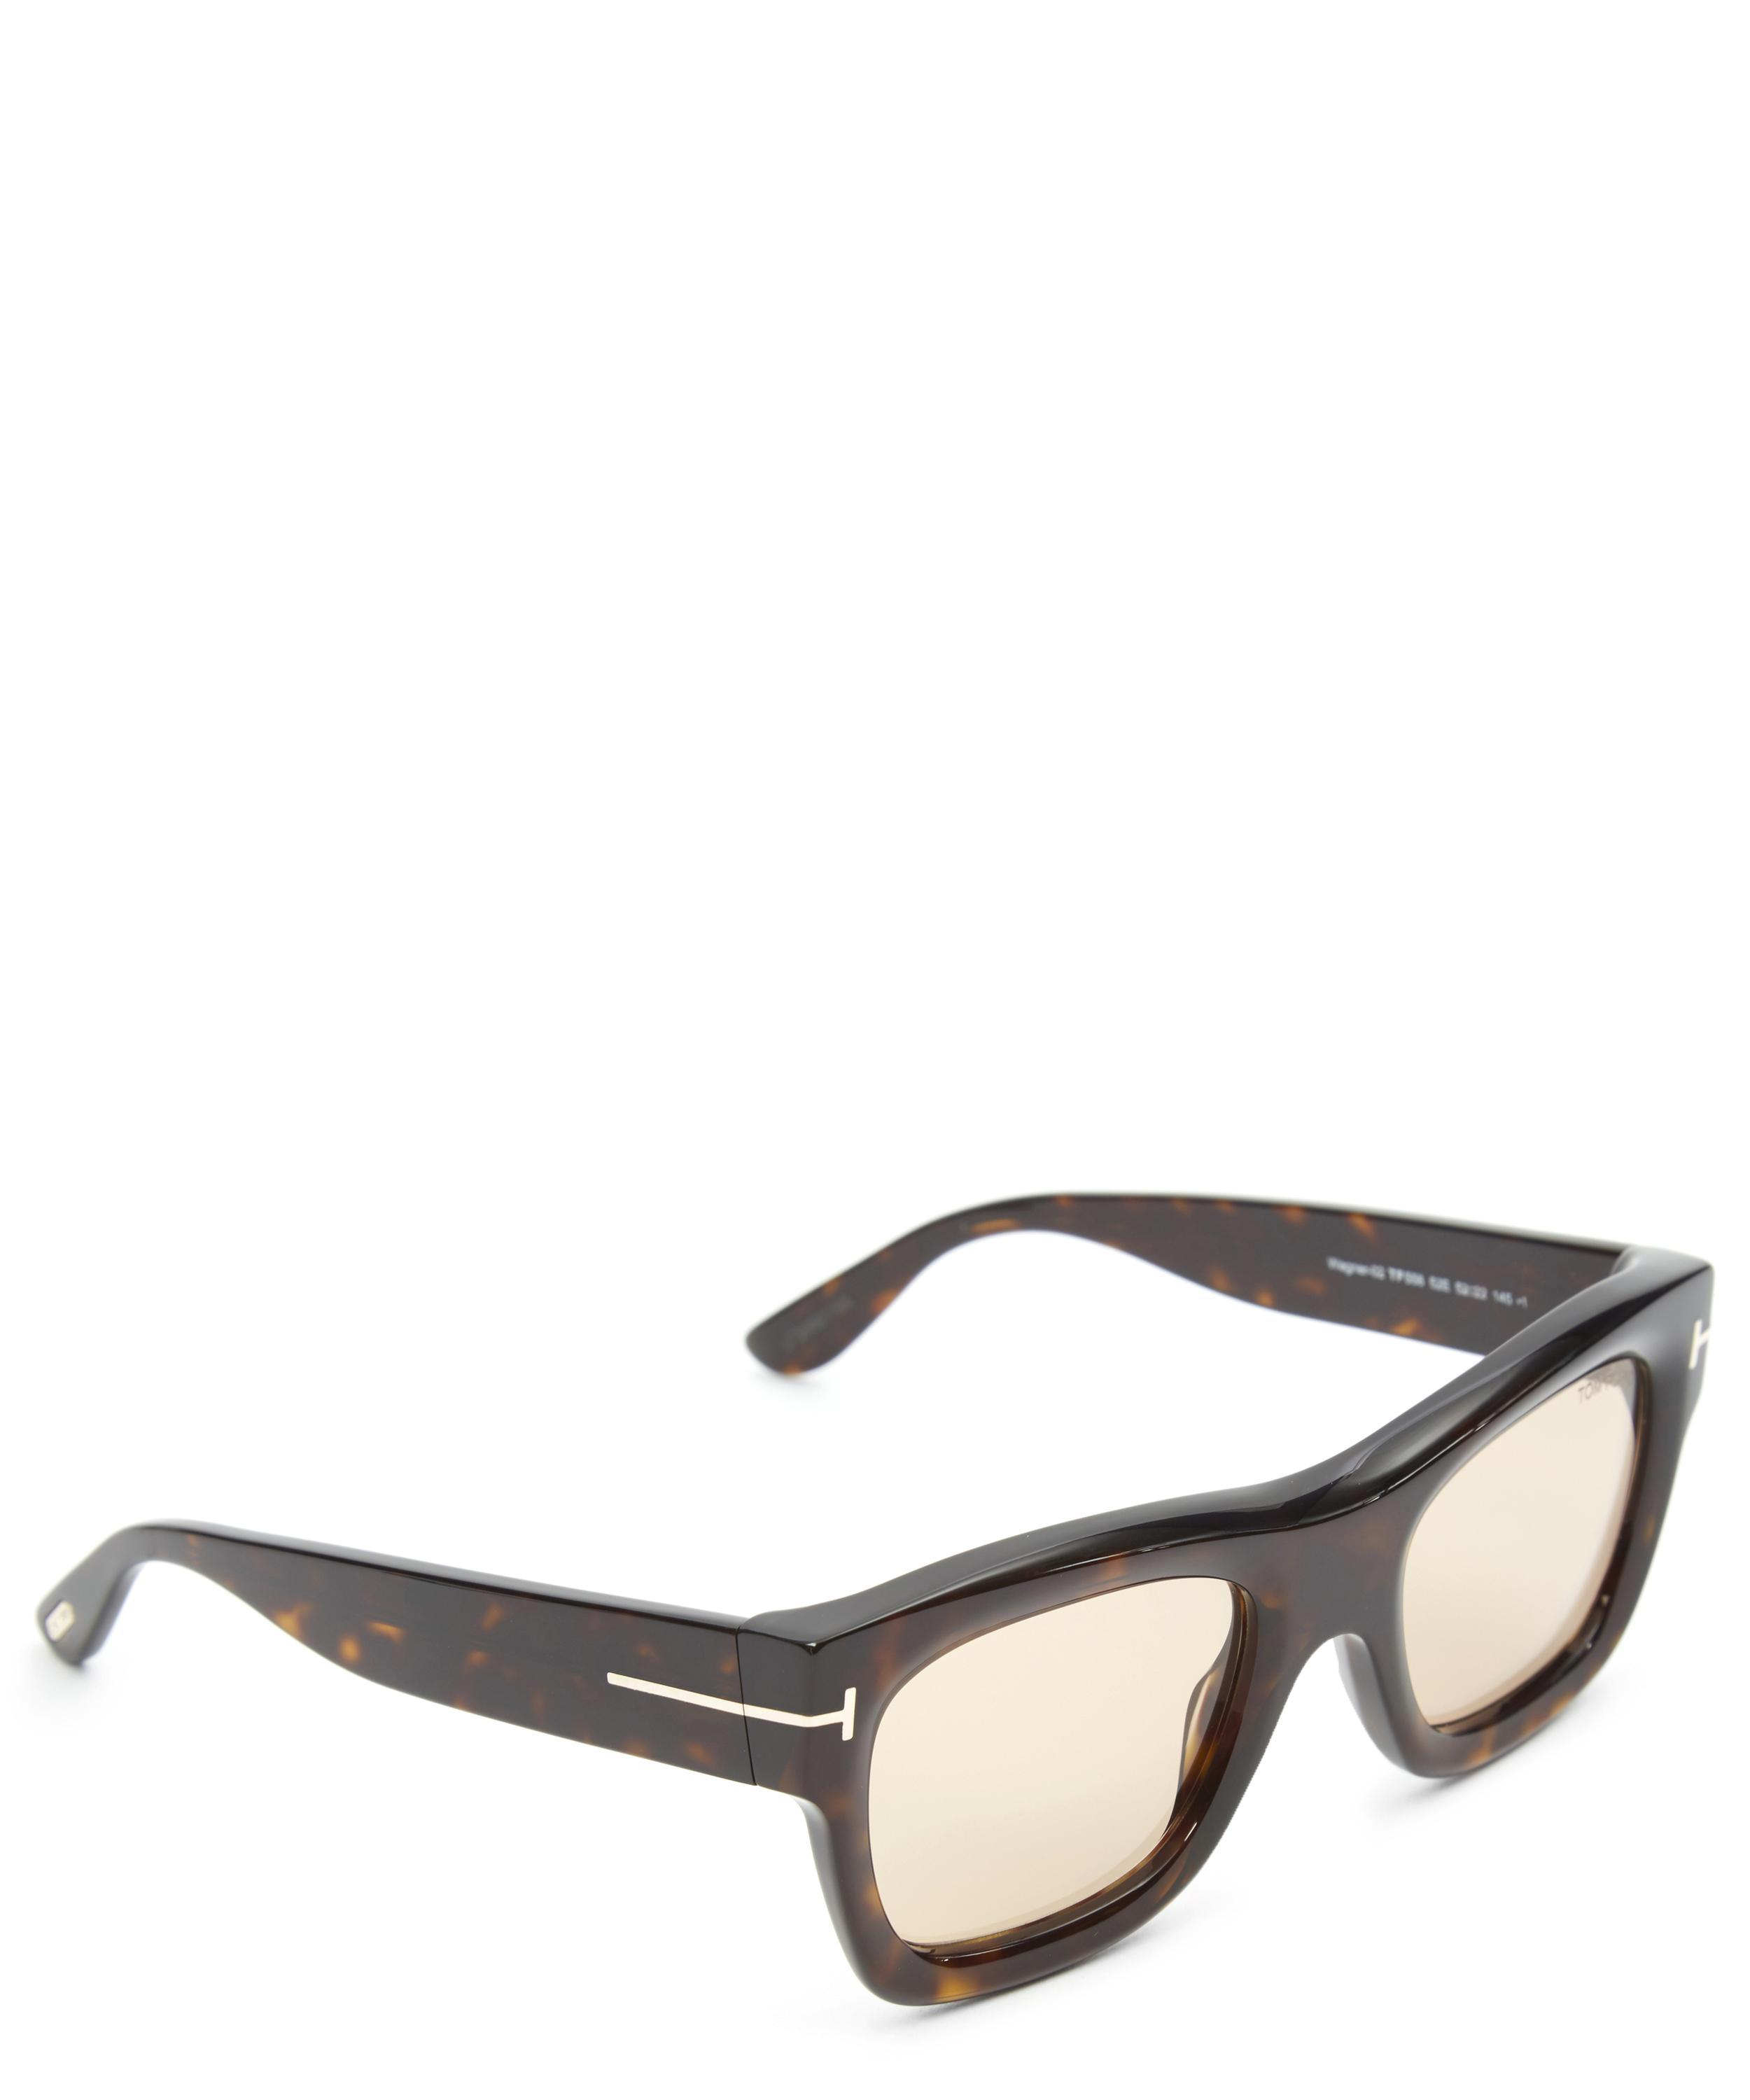 Tom Ford Wagner Sunglasses in Brown